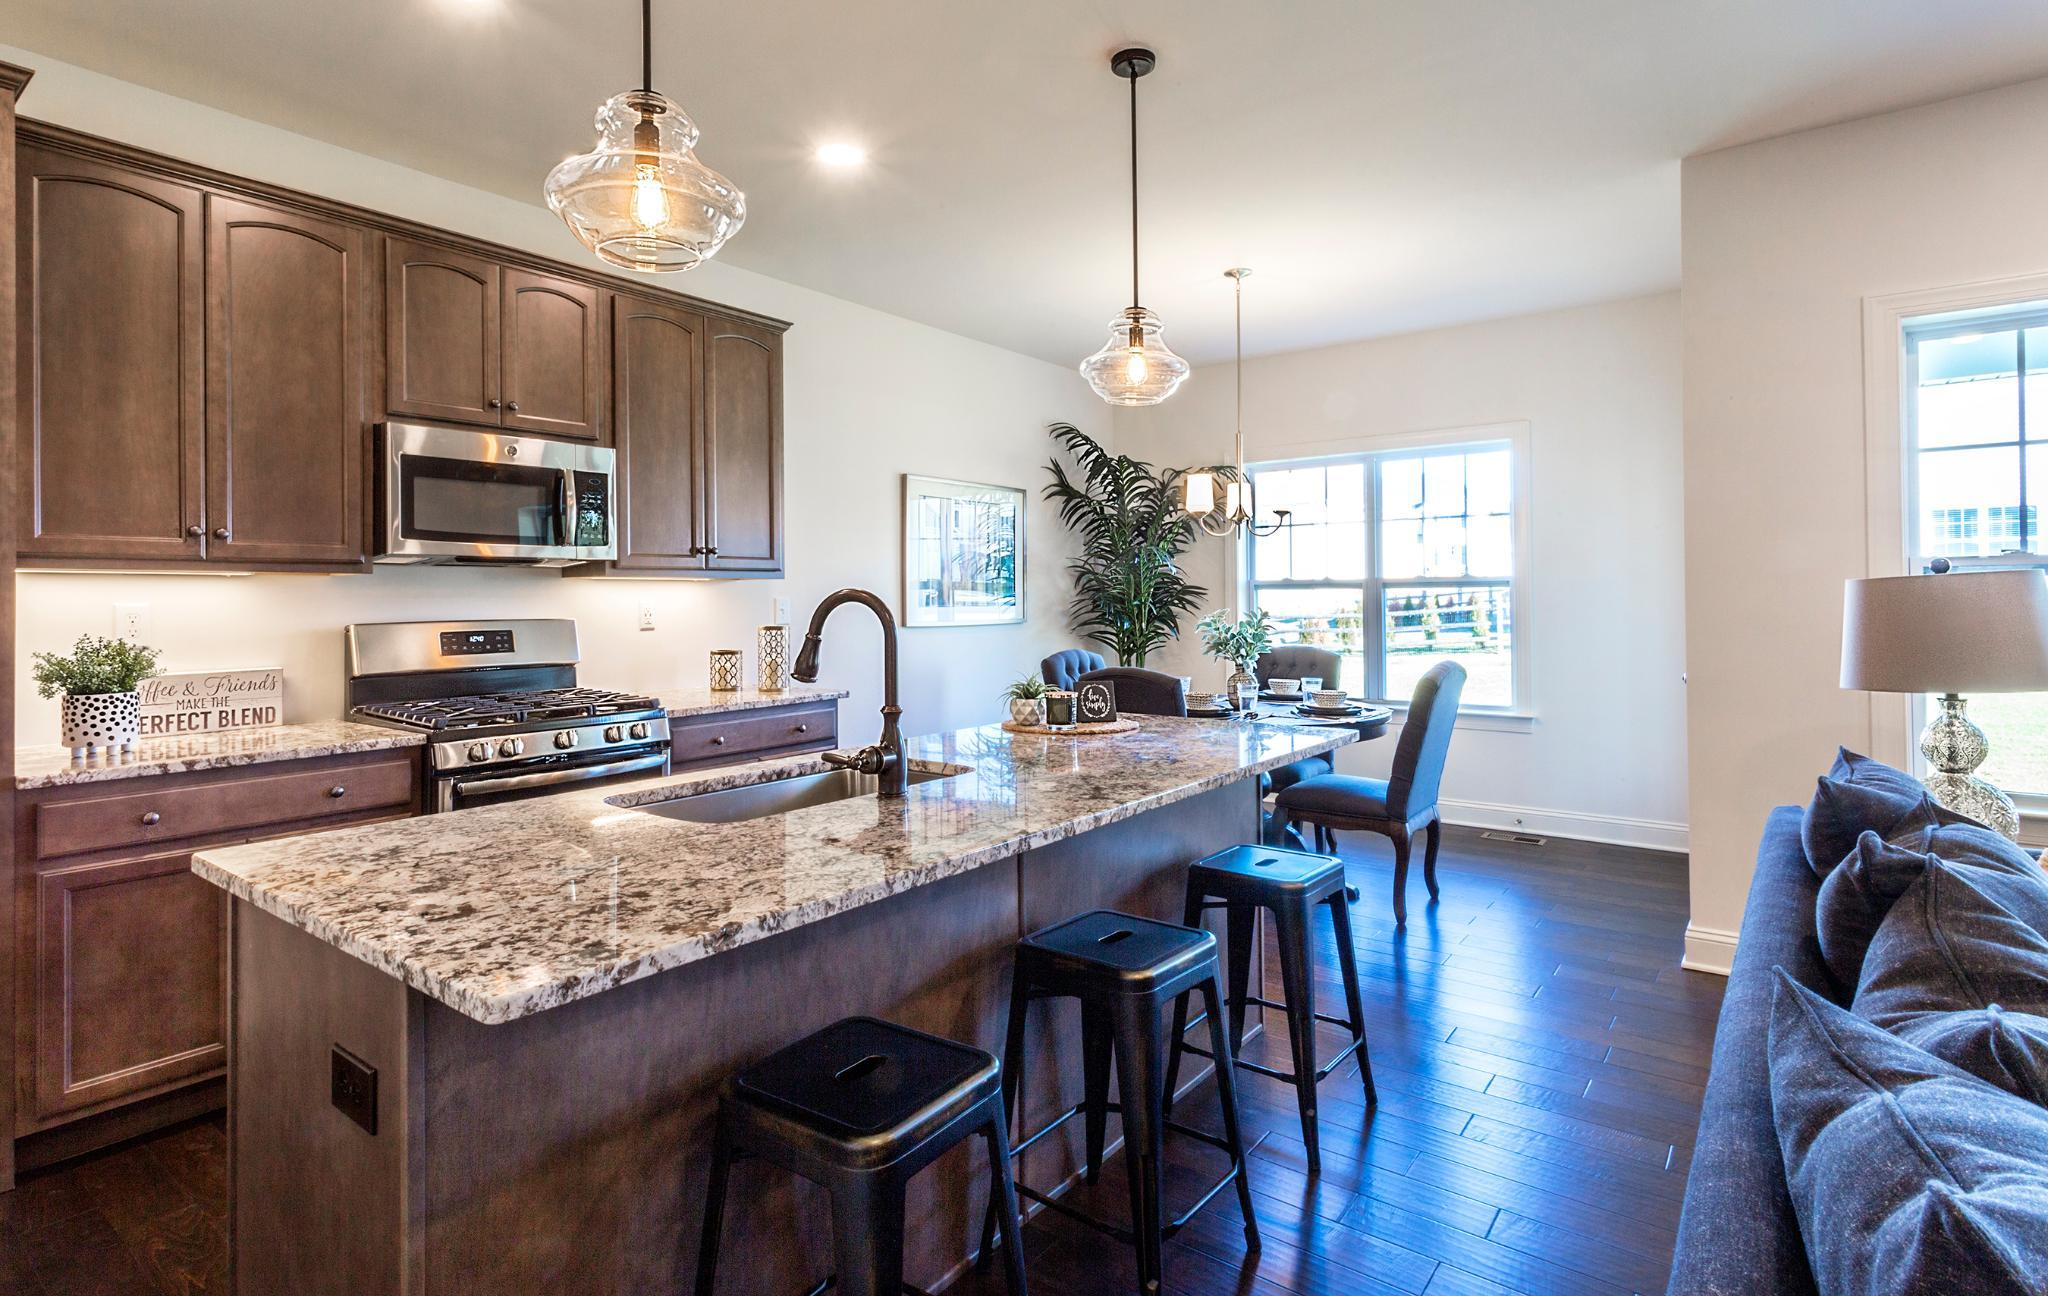 Kitchen featured in the Pinehurst Country By Tuskes Homes in Scranton-Wilkes-Barre, PA